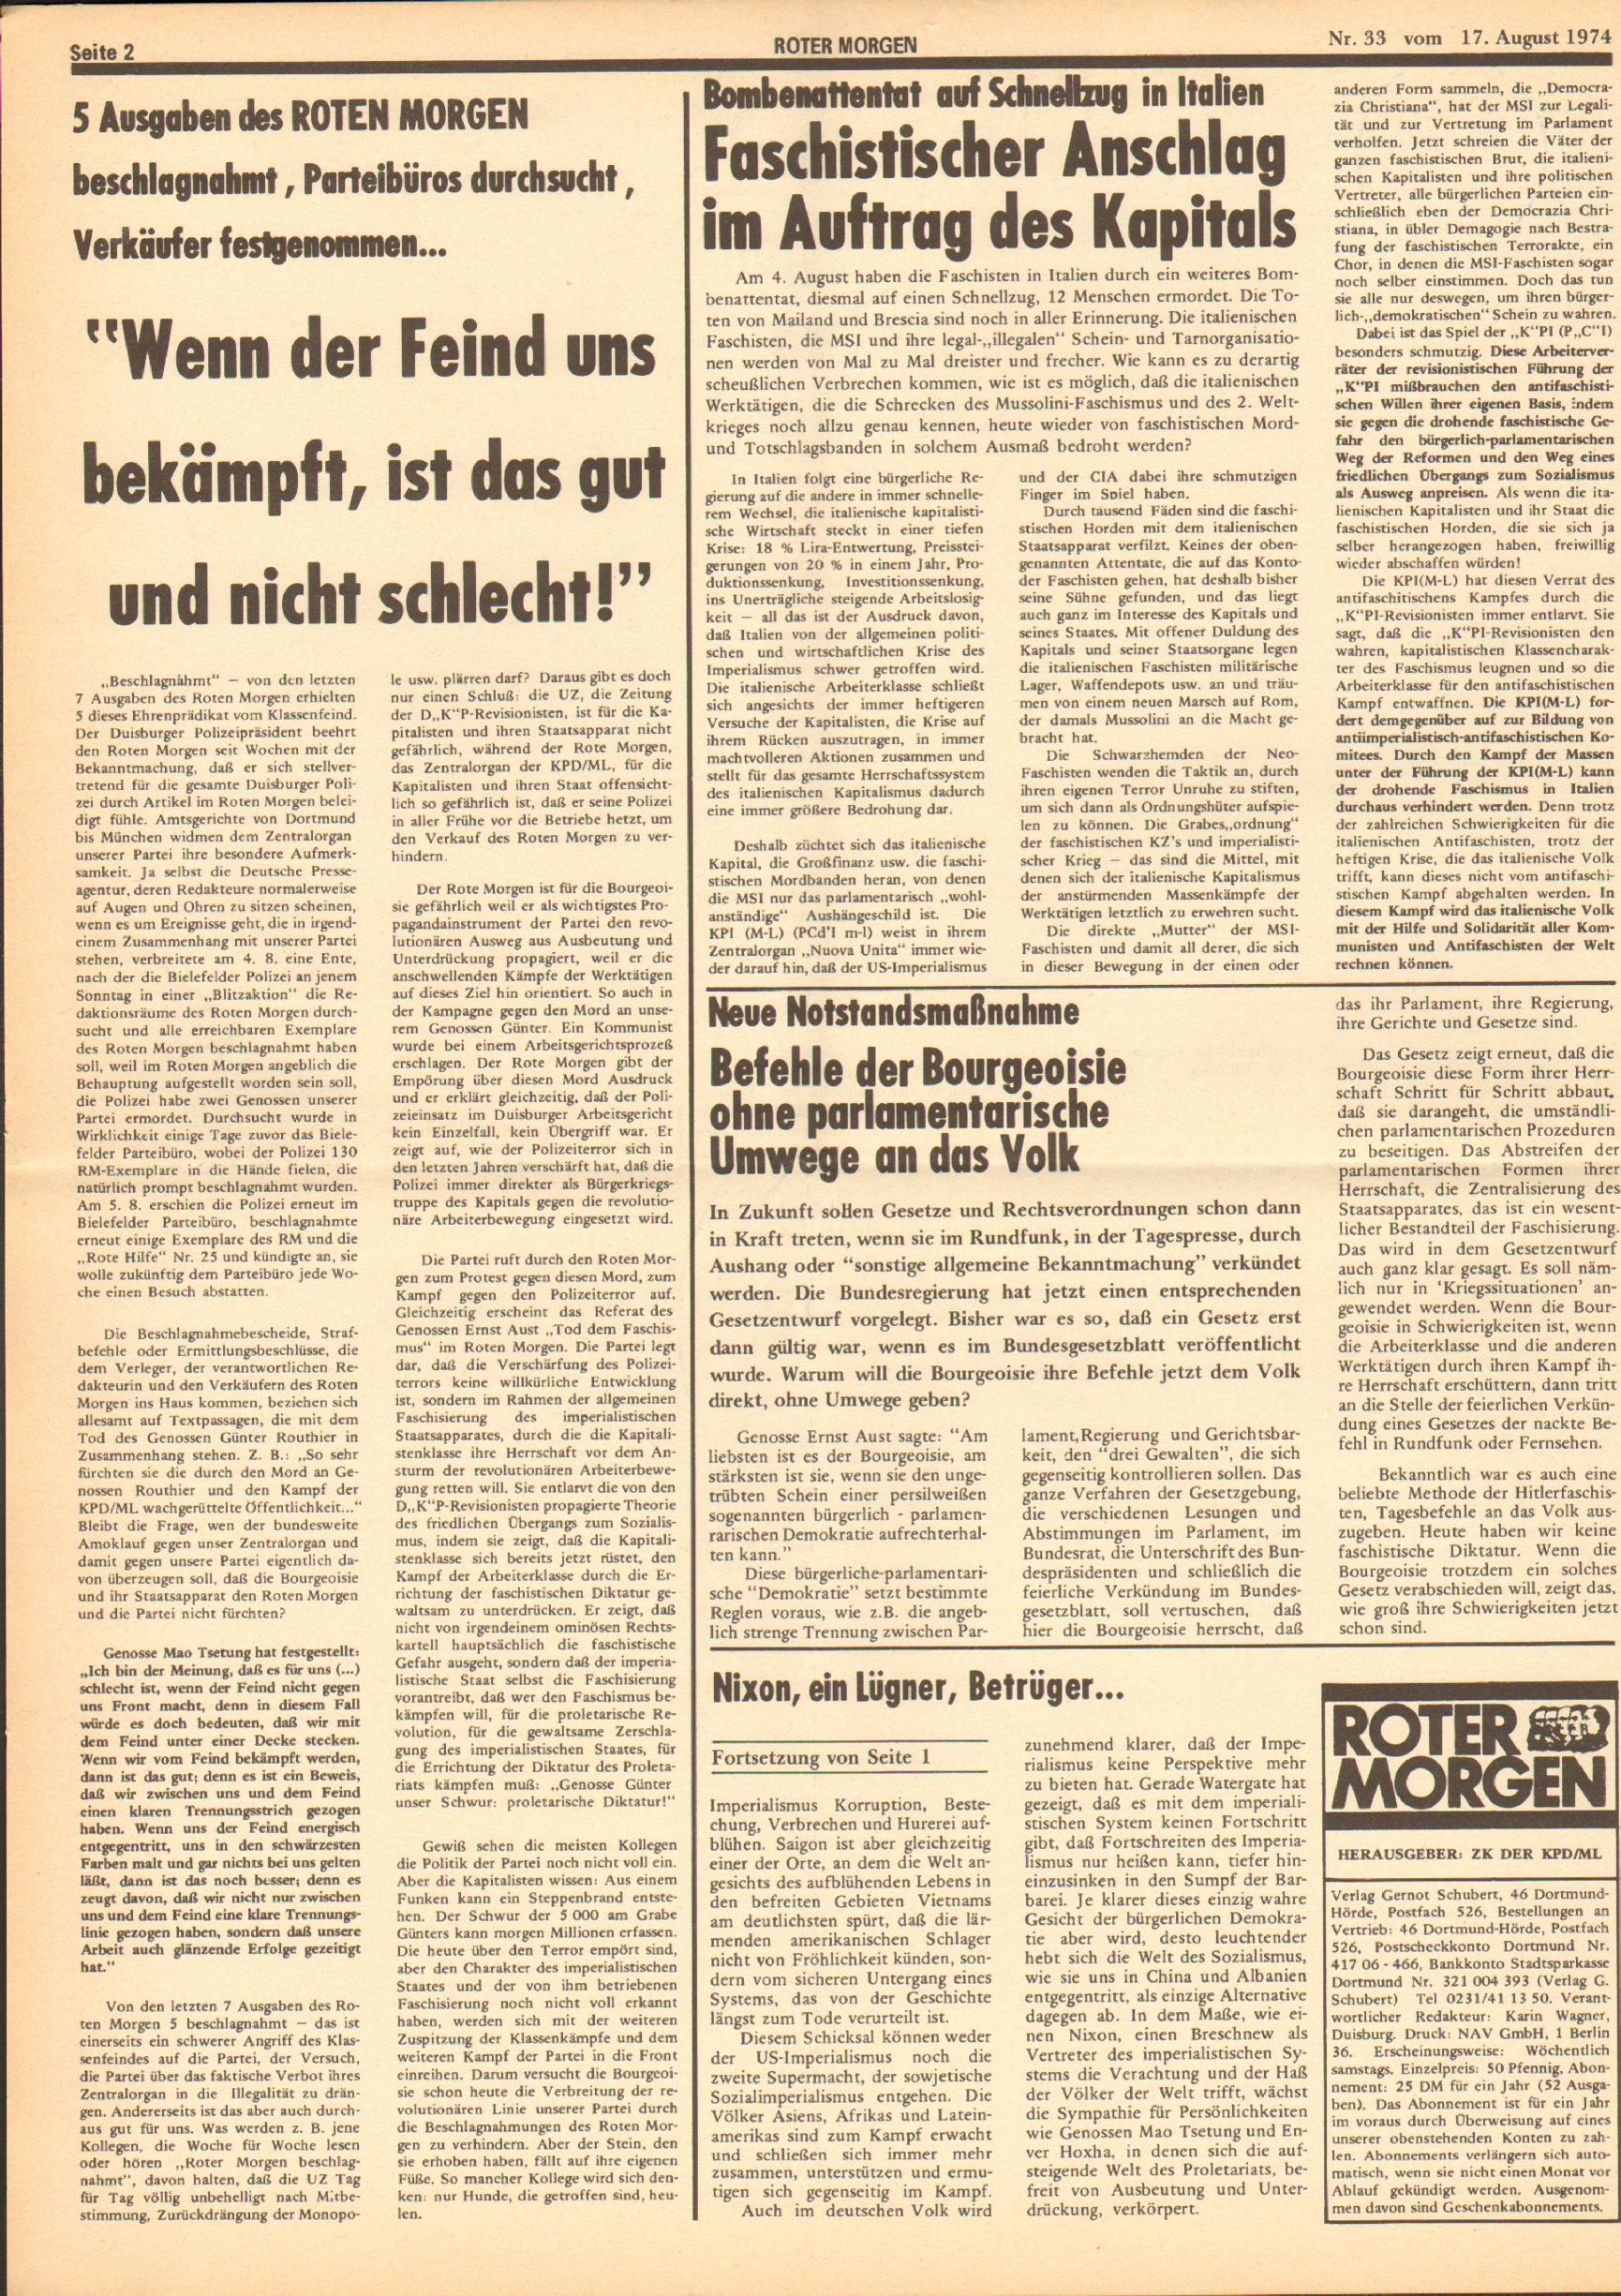 Roter Morgen, 8. Jg., 17. August 1974, Nr. 33, Seite 2